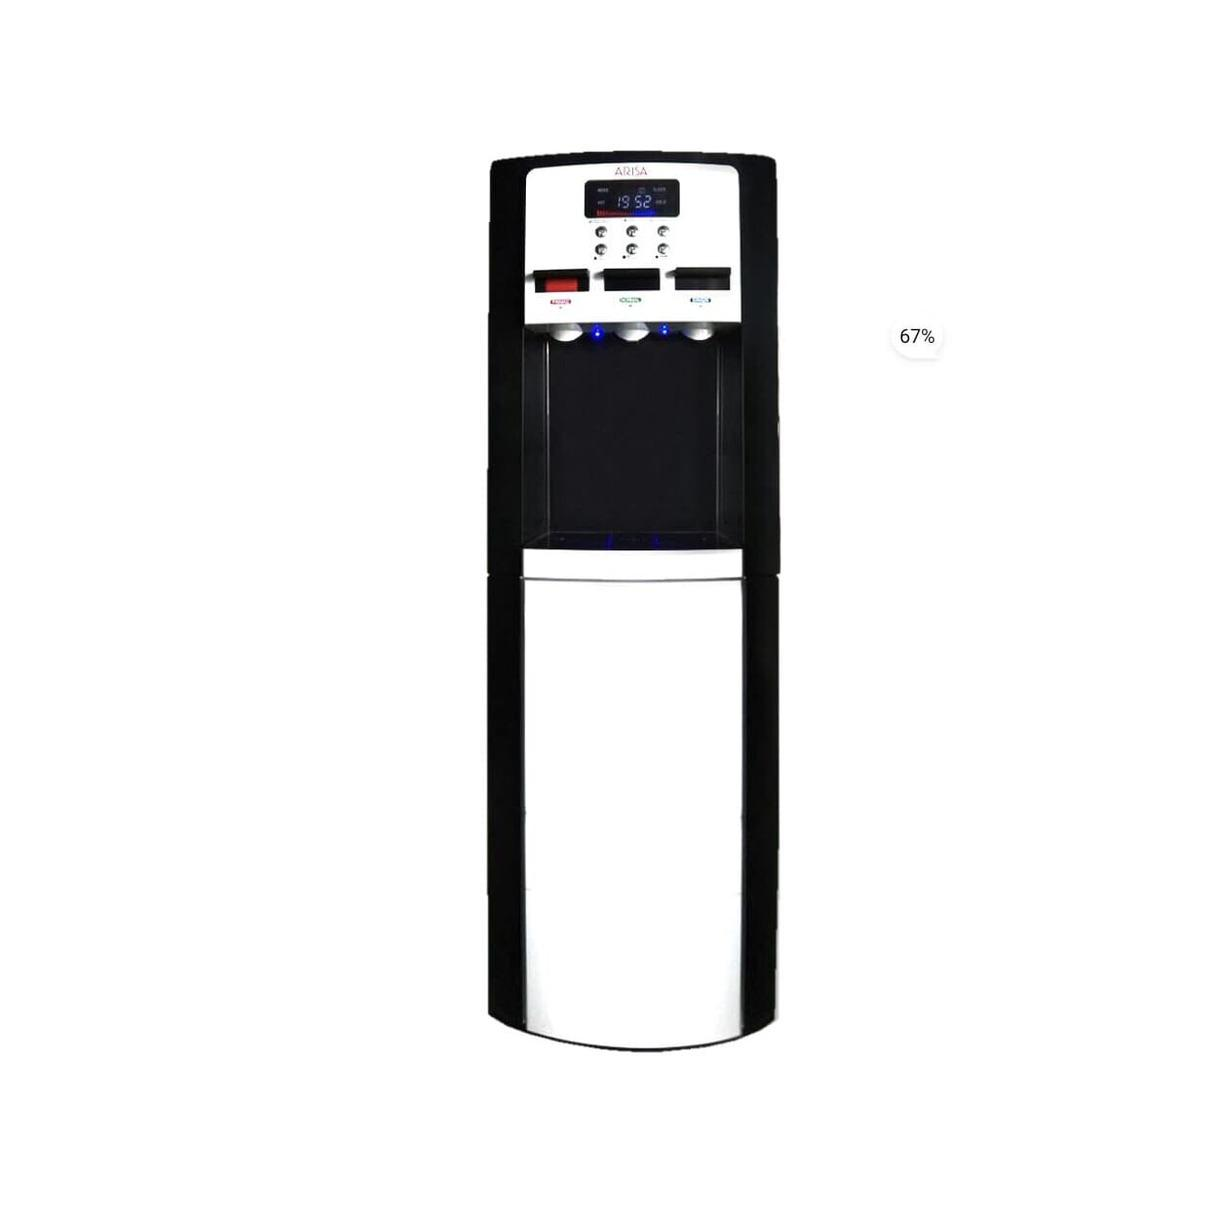 Arisa wd-0912T Dispenser Galon atas Stainless Led display Low watt